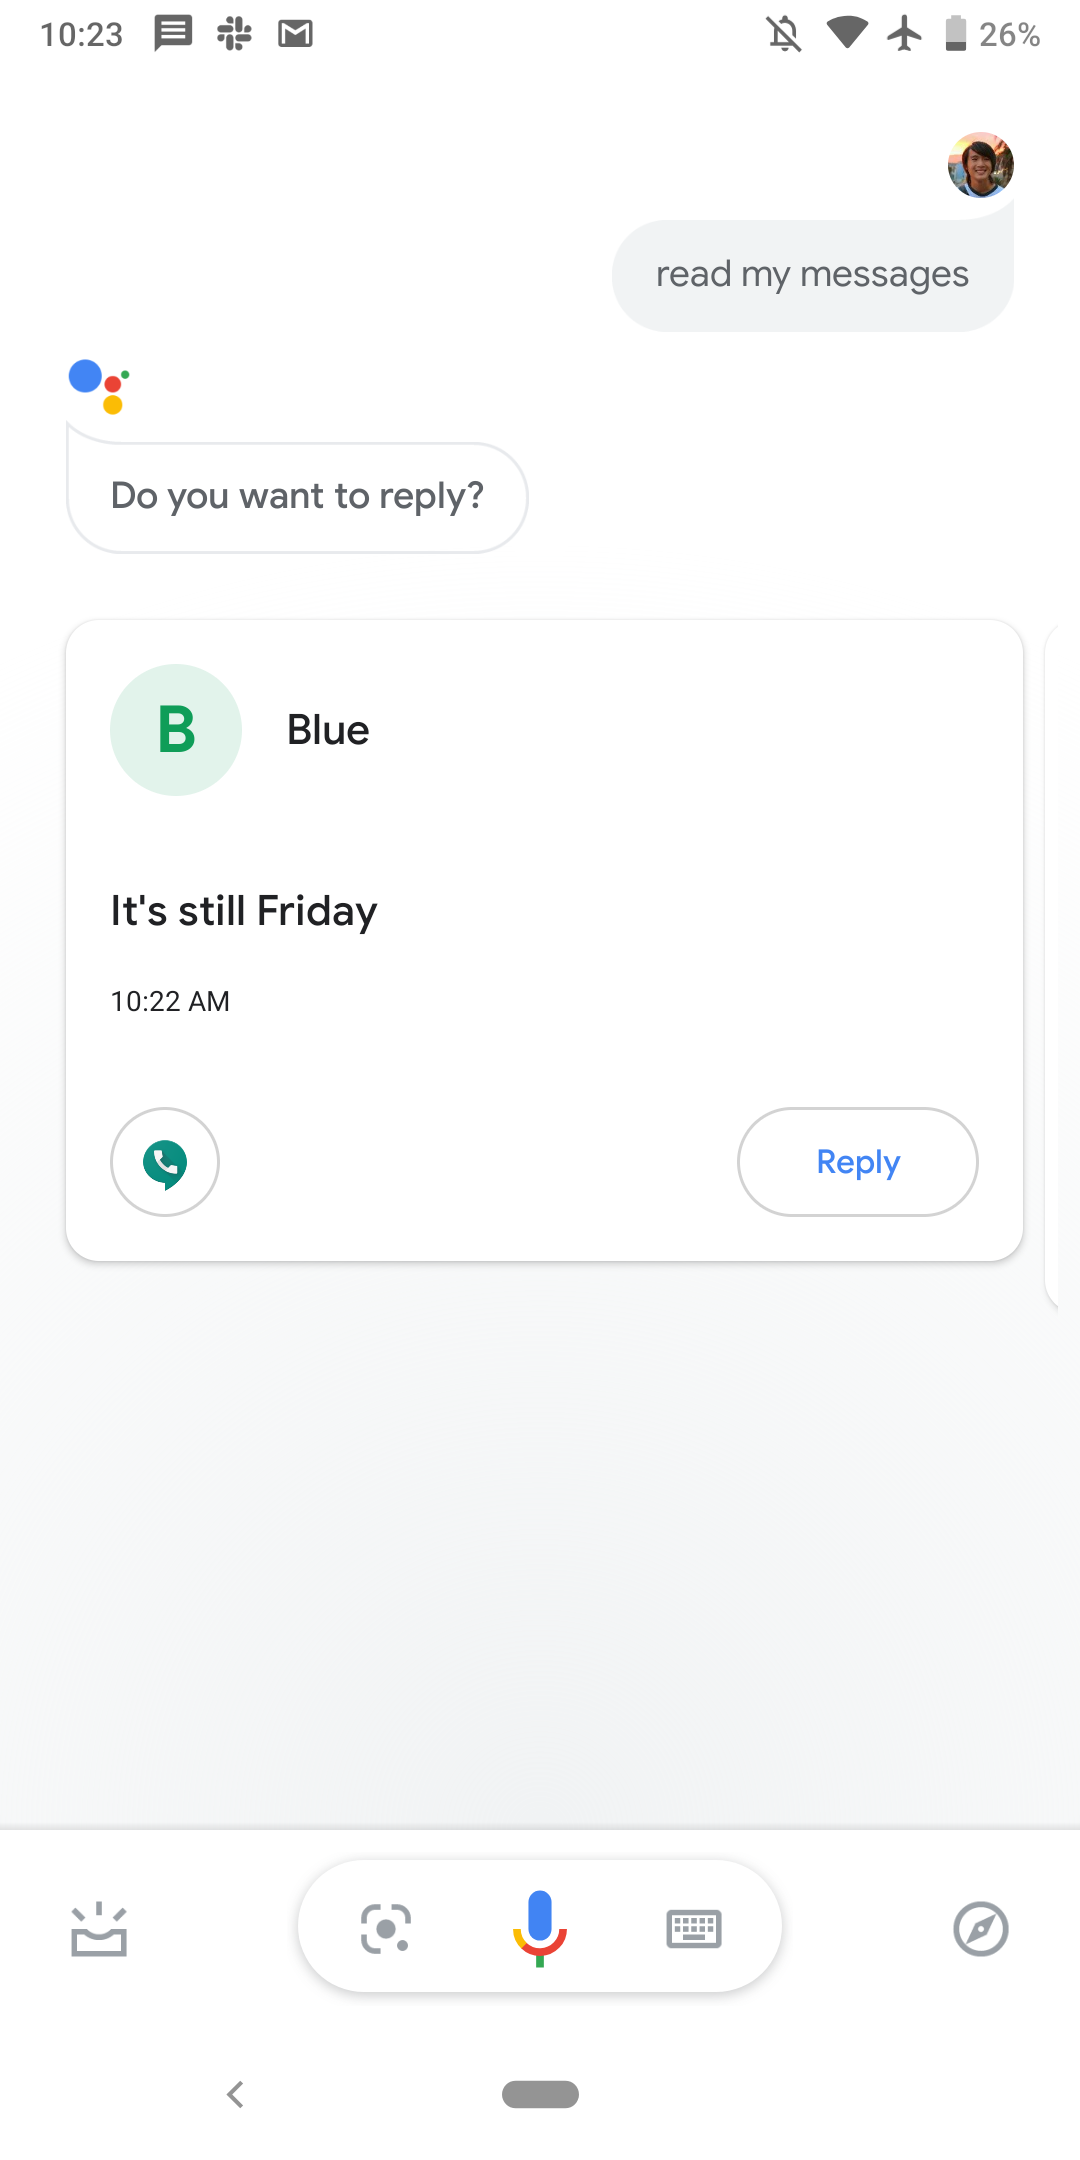 Google Assistant can read new messages from all apps